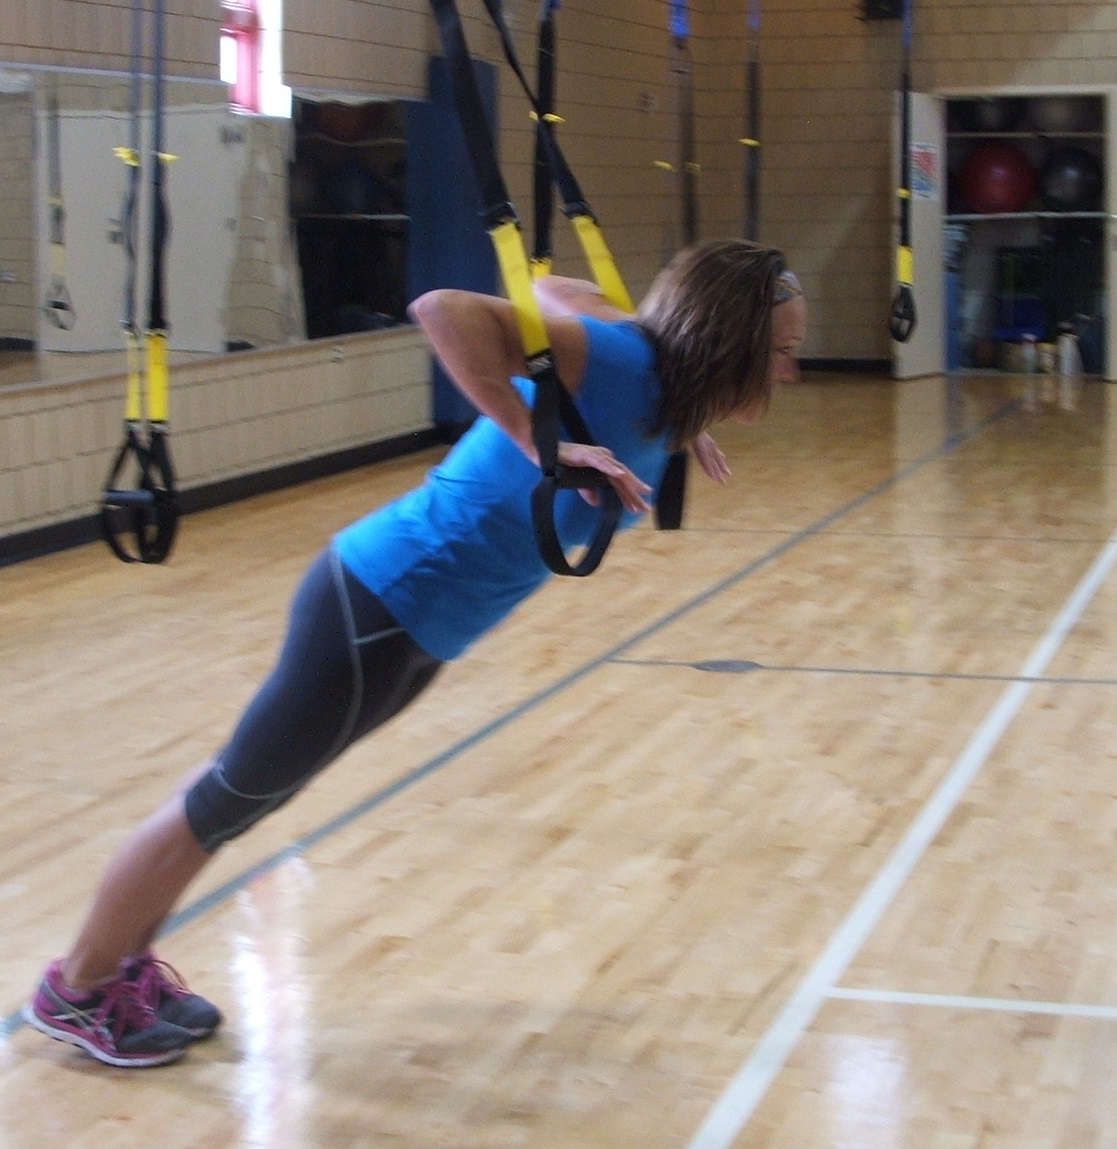 TRX class with Shelly